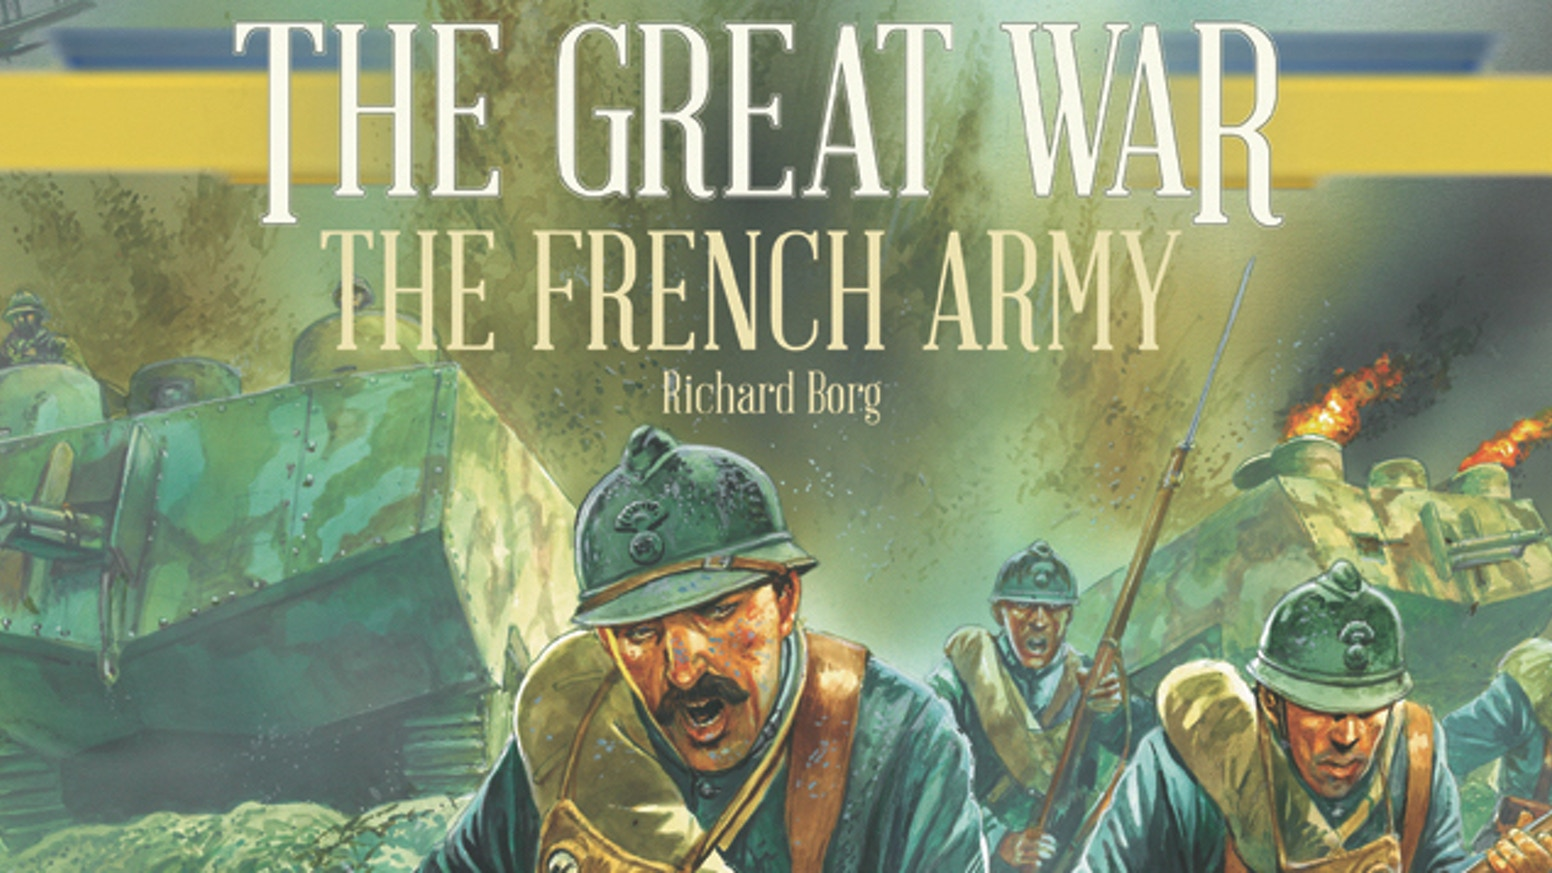 A French Army expansion for Richard Borg's The Great War game PLUS the reissued core game, in English, French and Spanish versions